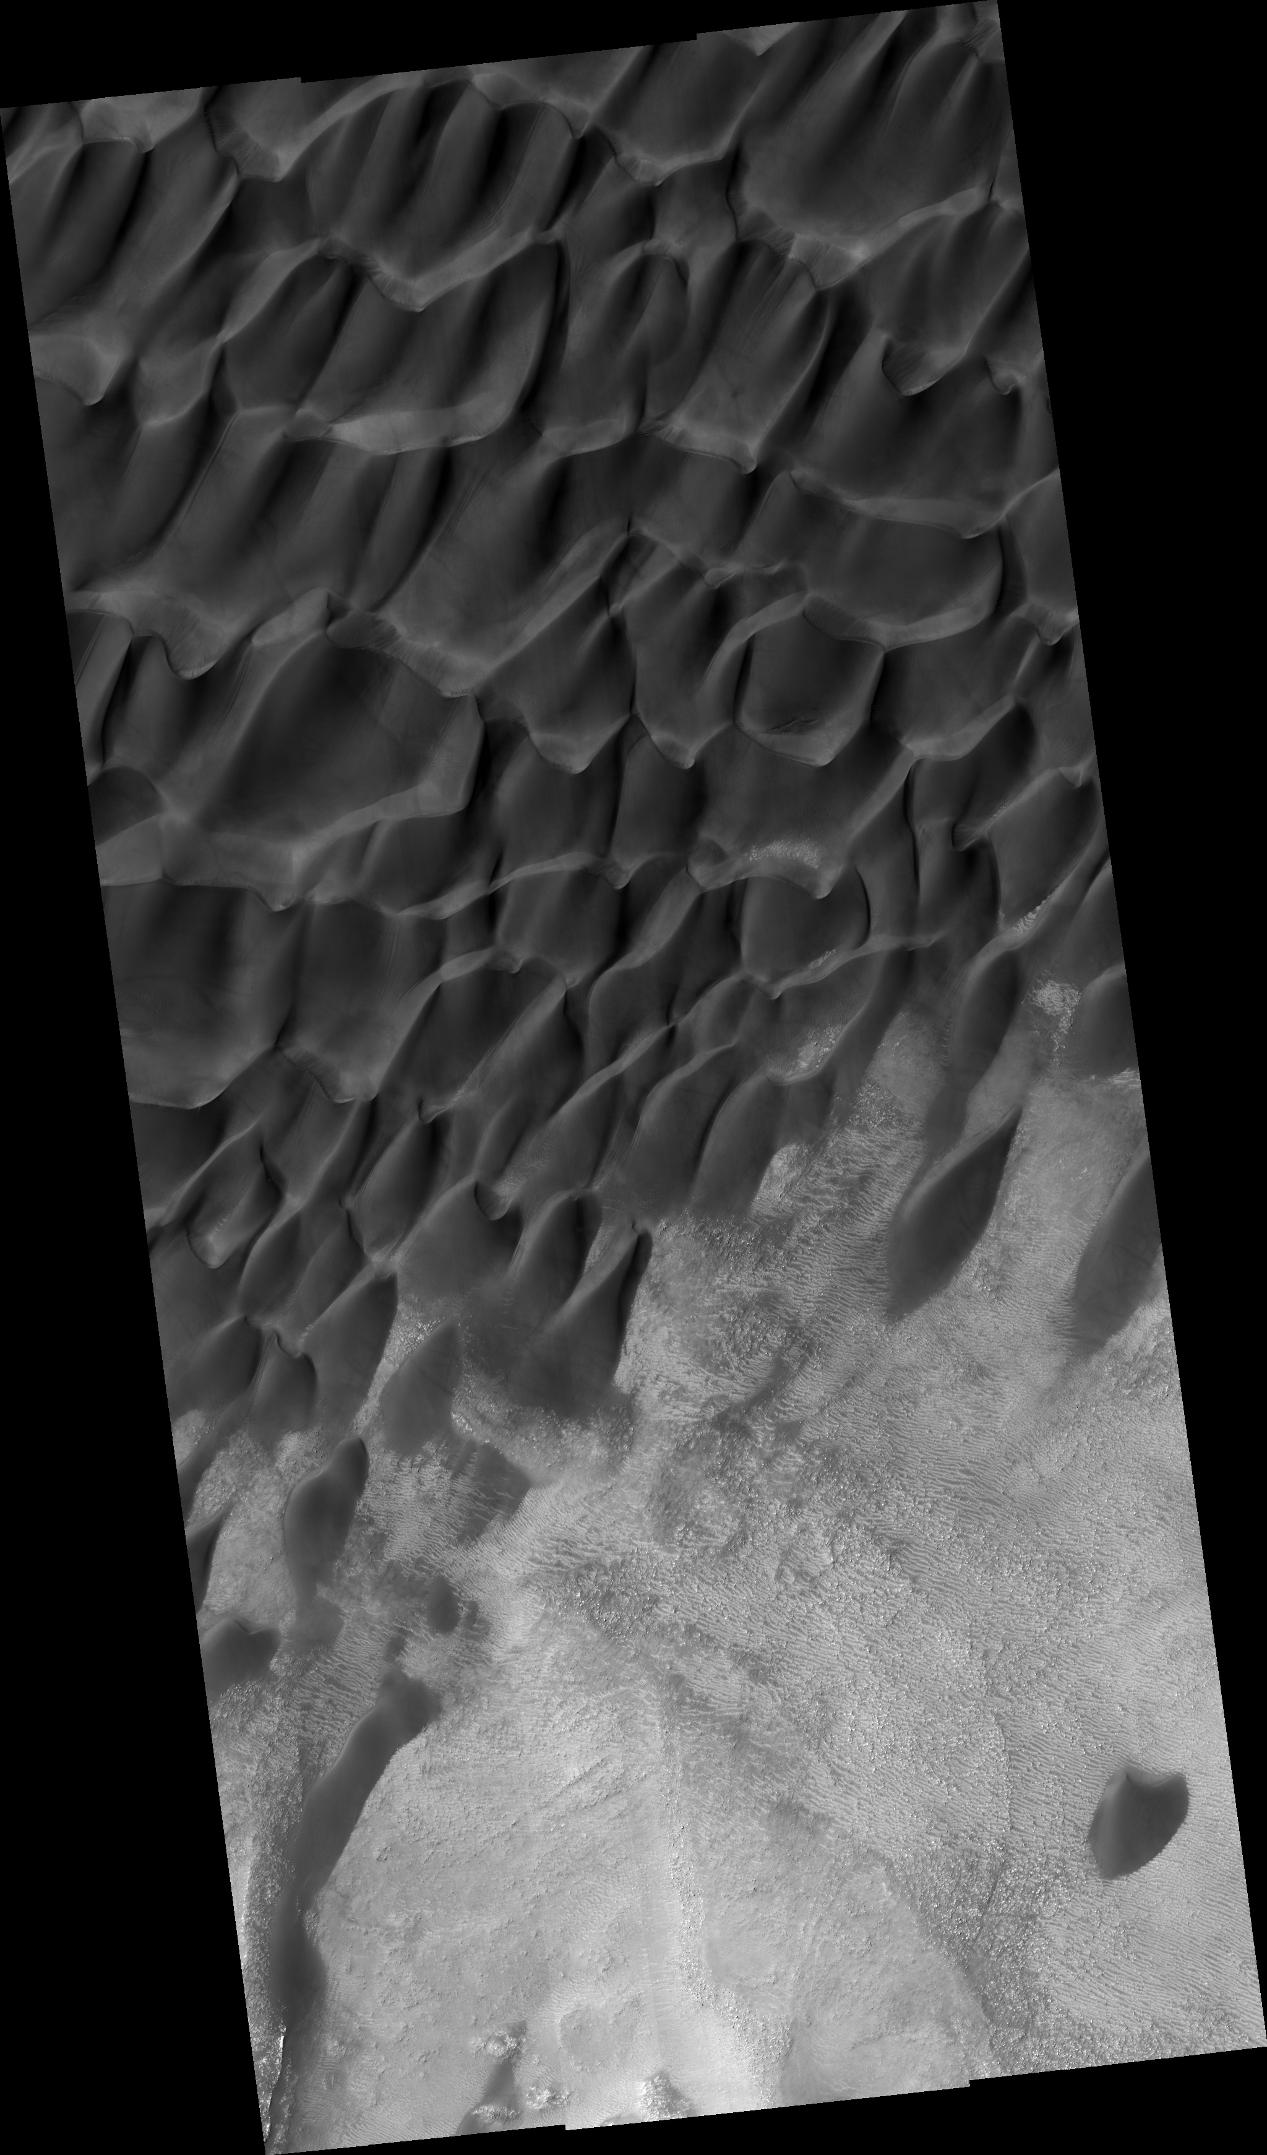 This dune field in Aonia Terra shows sand dunes with a variety of morphologies.  These complex shapes often indicate that the dominating winds change direction, either over time or from one location to the next.